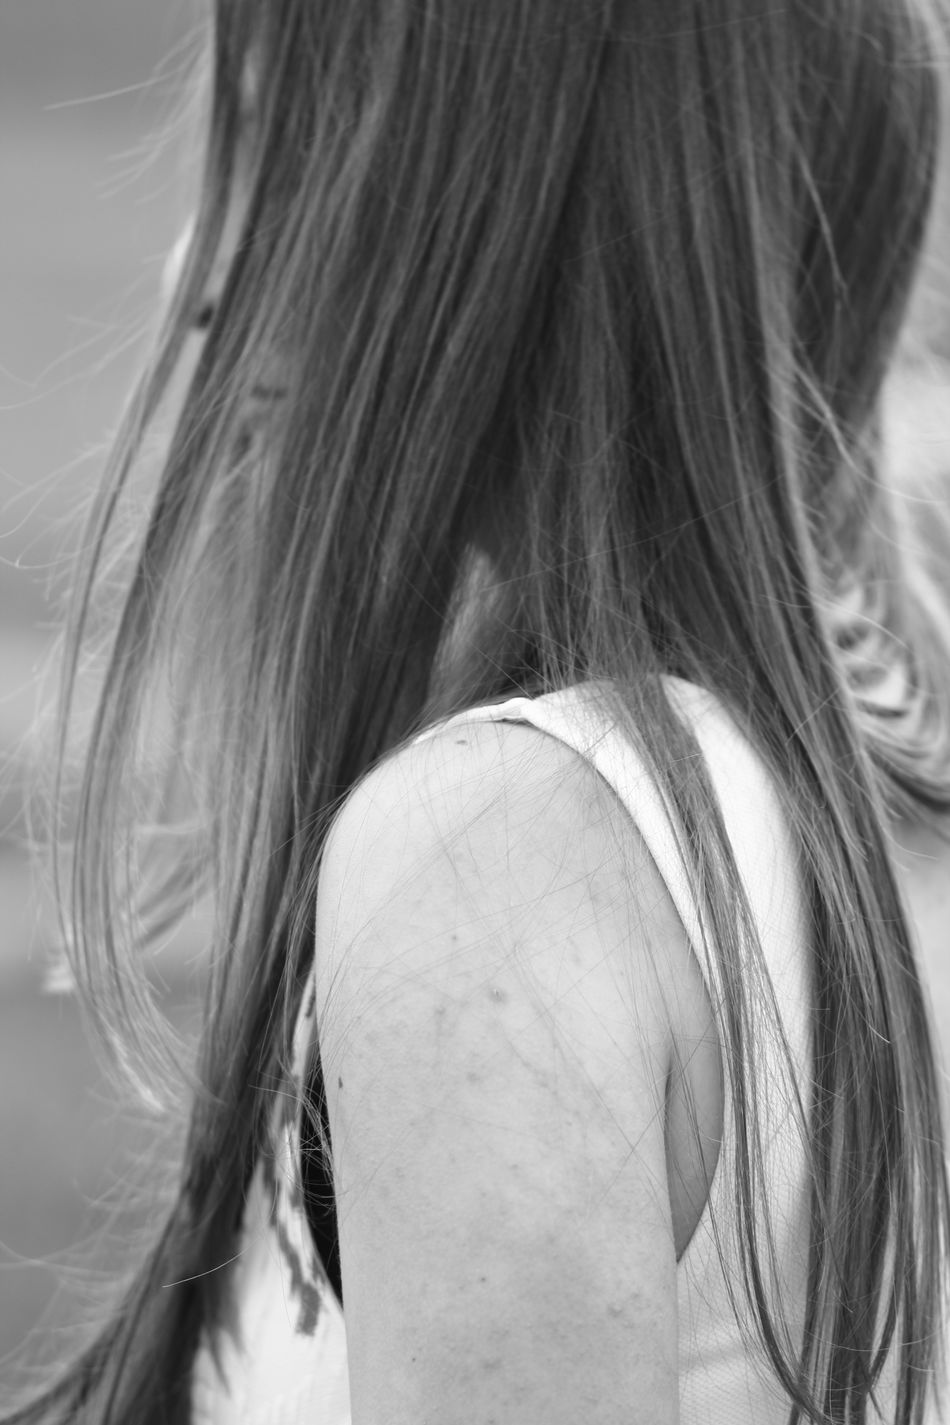 #blackandwhite #brunette #summer #freedom #fotoshoot #girl #me #eyes #lips #JustMe #lithuaniangirl Casual Clothing Close-up Day Headshot Human Hair Leisure Activity Lifestyles Long Hair